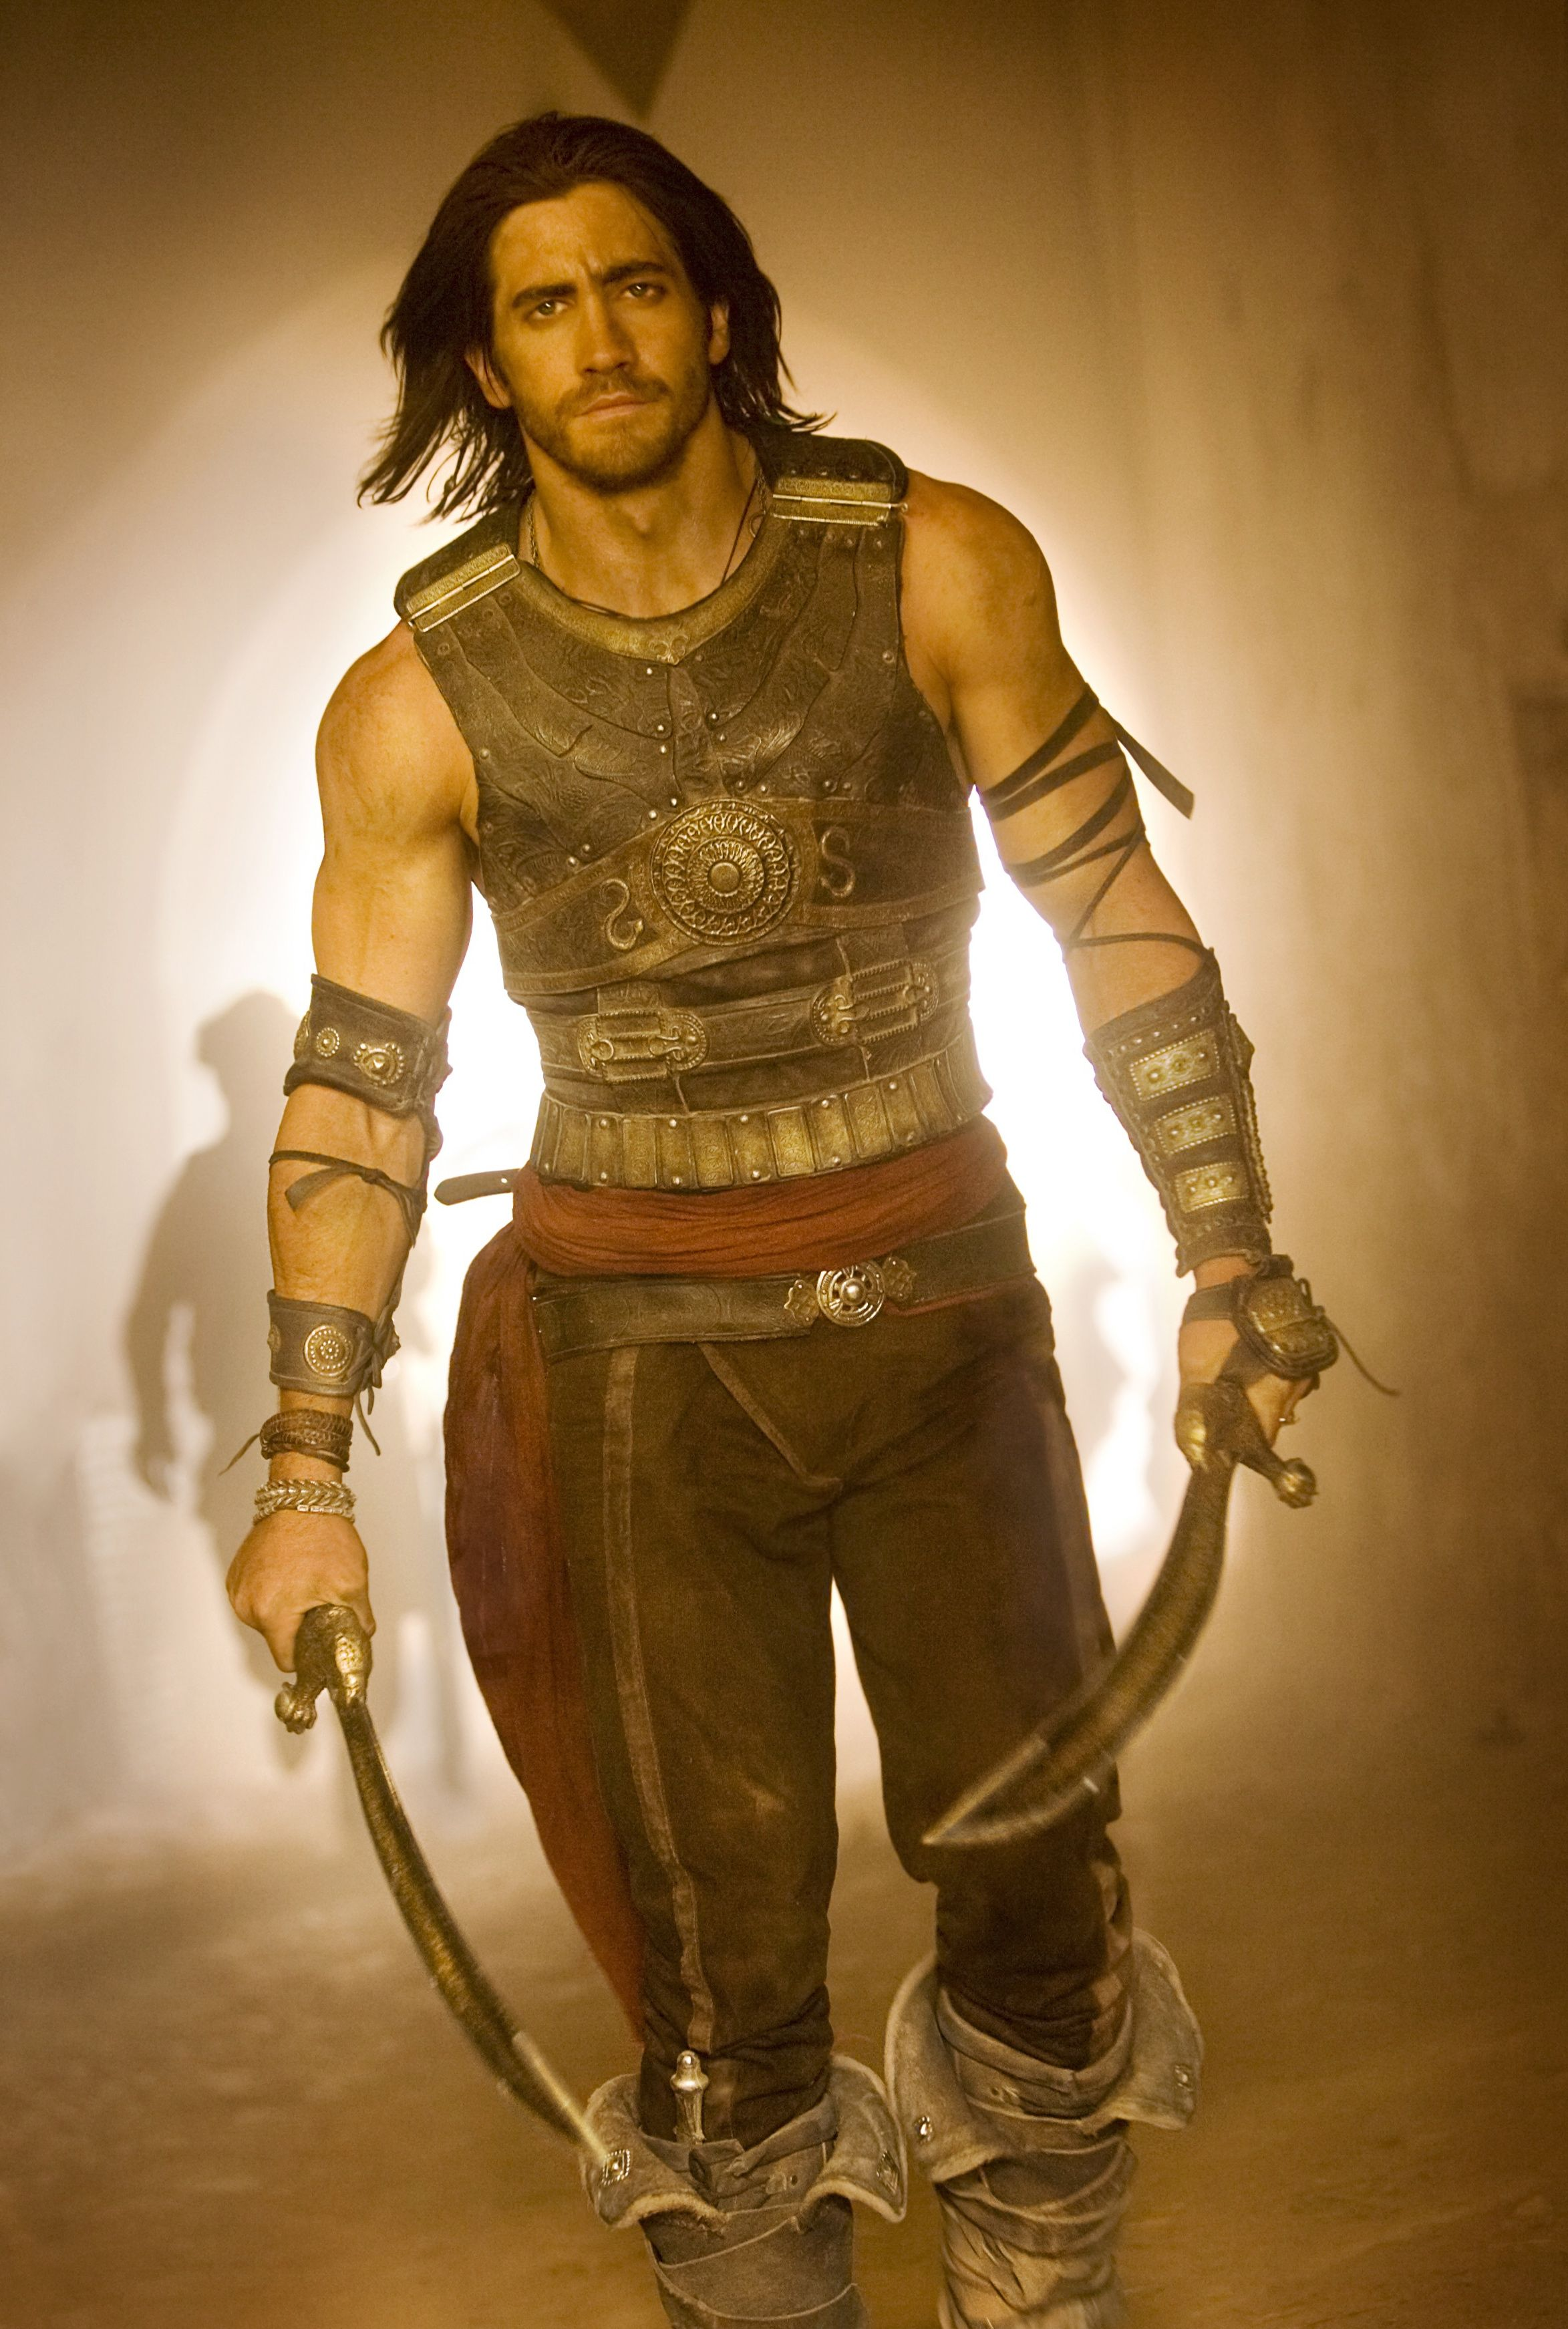 Jake Gyllenhaal In Prince Of Persia Mmm Good Stuff Prince Of Persia Prince Of Persia Movie Jake Gyllenhaal